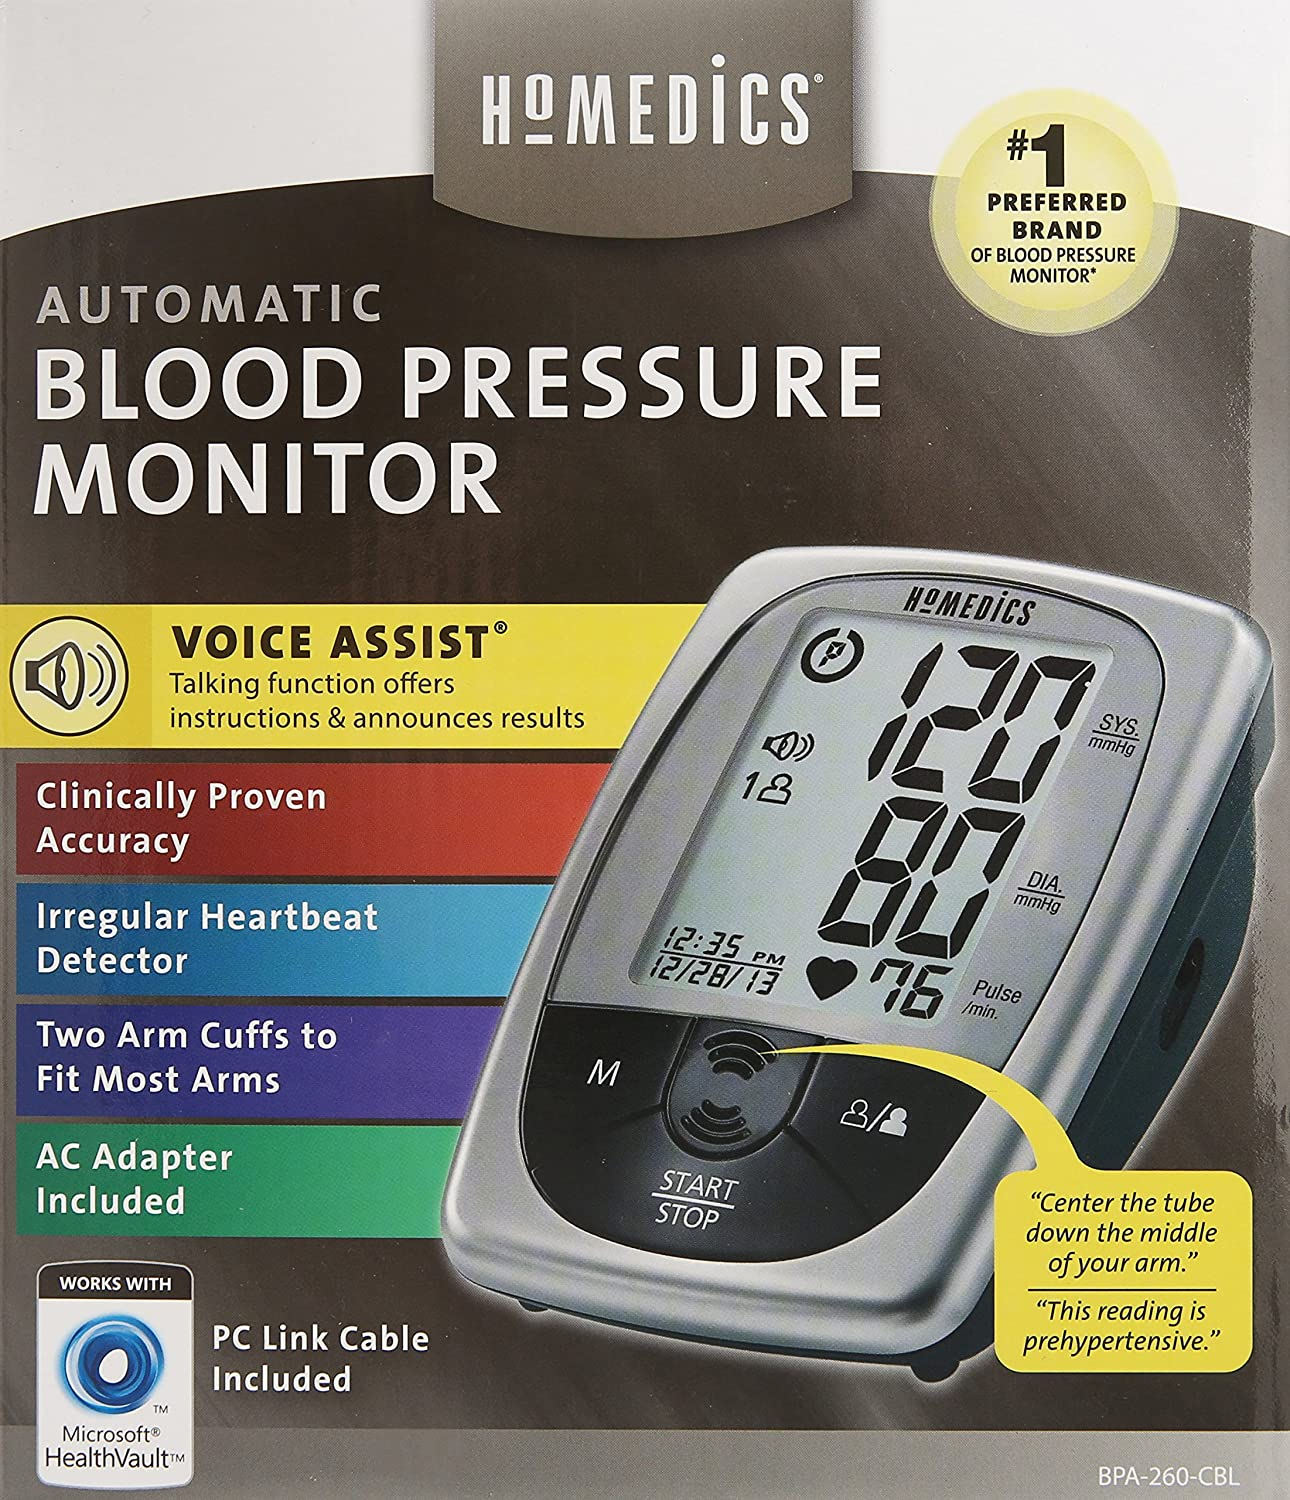 HoMedics BPA-260-CBL Automatic Blood Pressure Monitor, Gray: Amazon.es: Salud y cuidado personal